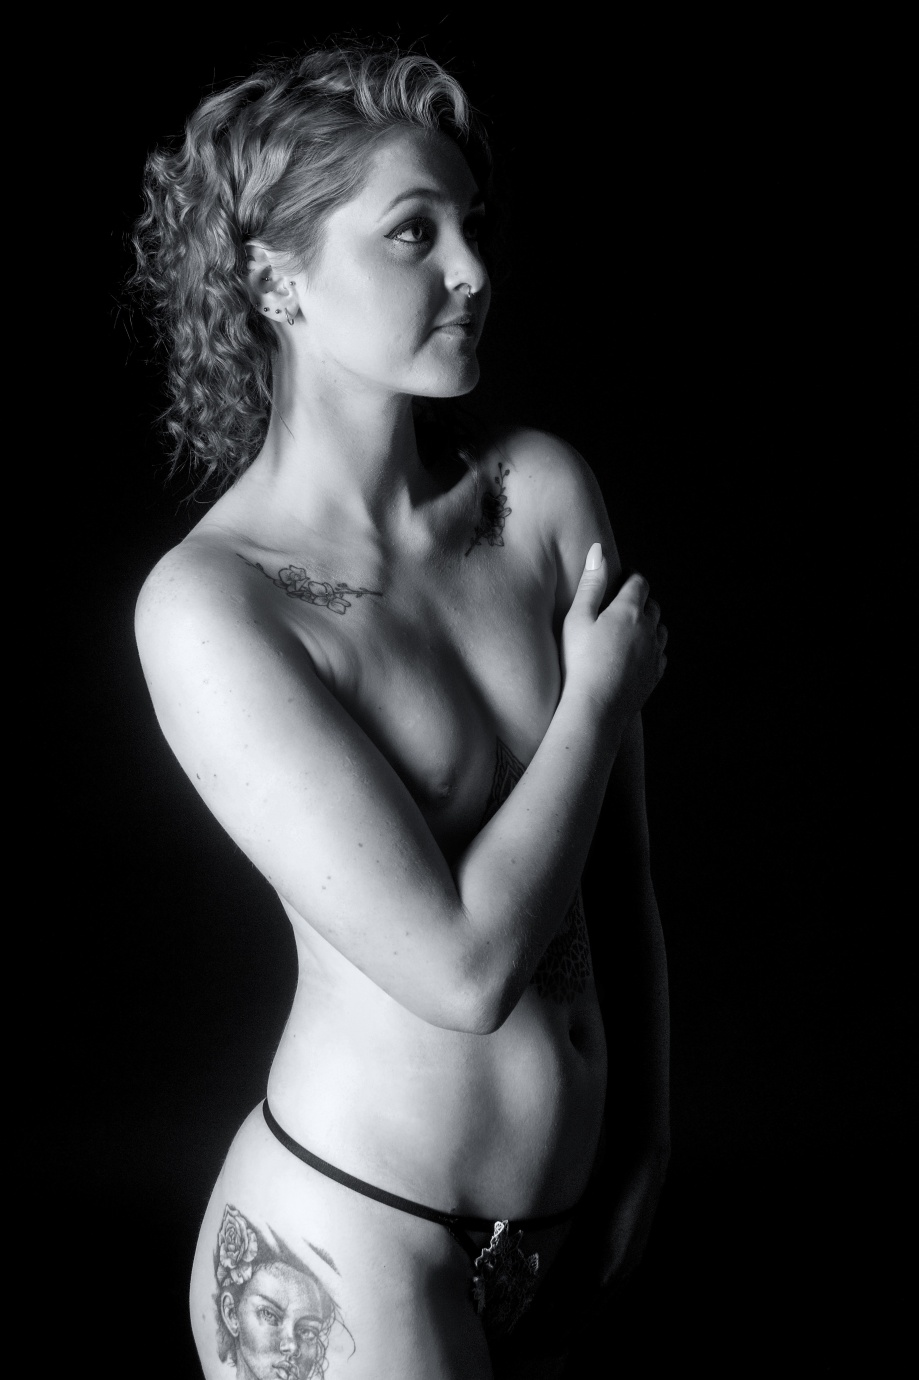 Sarah O'Connor, model, cork, ireland, boudoir, glamour,studio, lingerie, topless